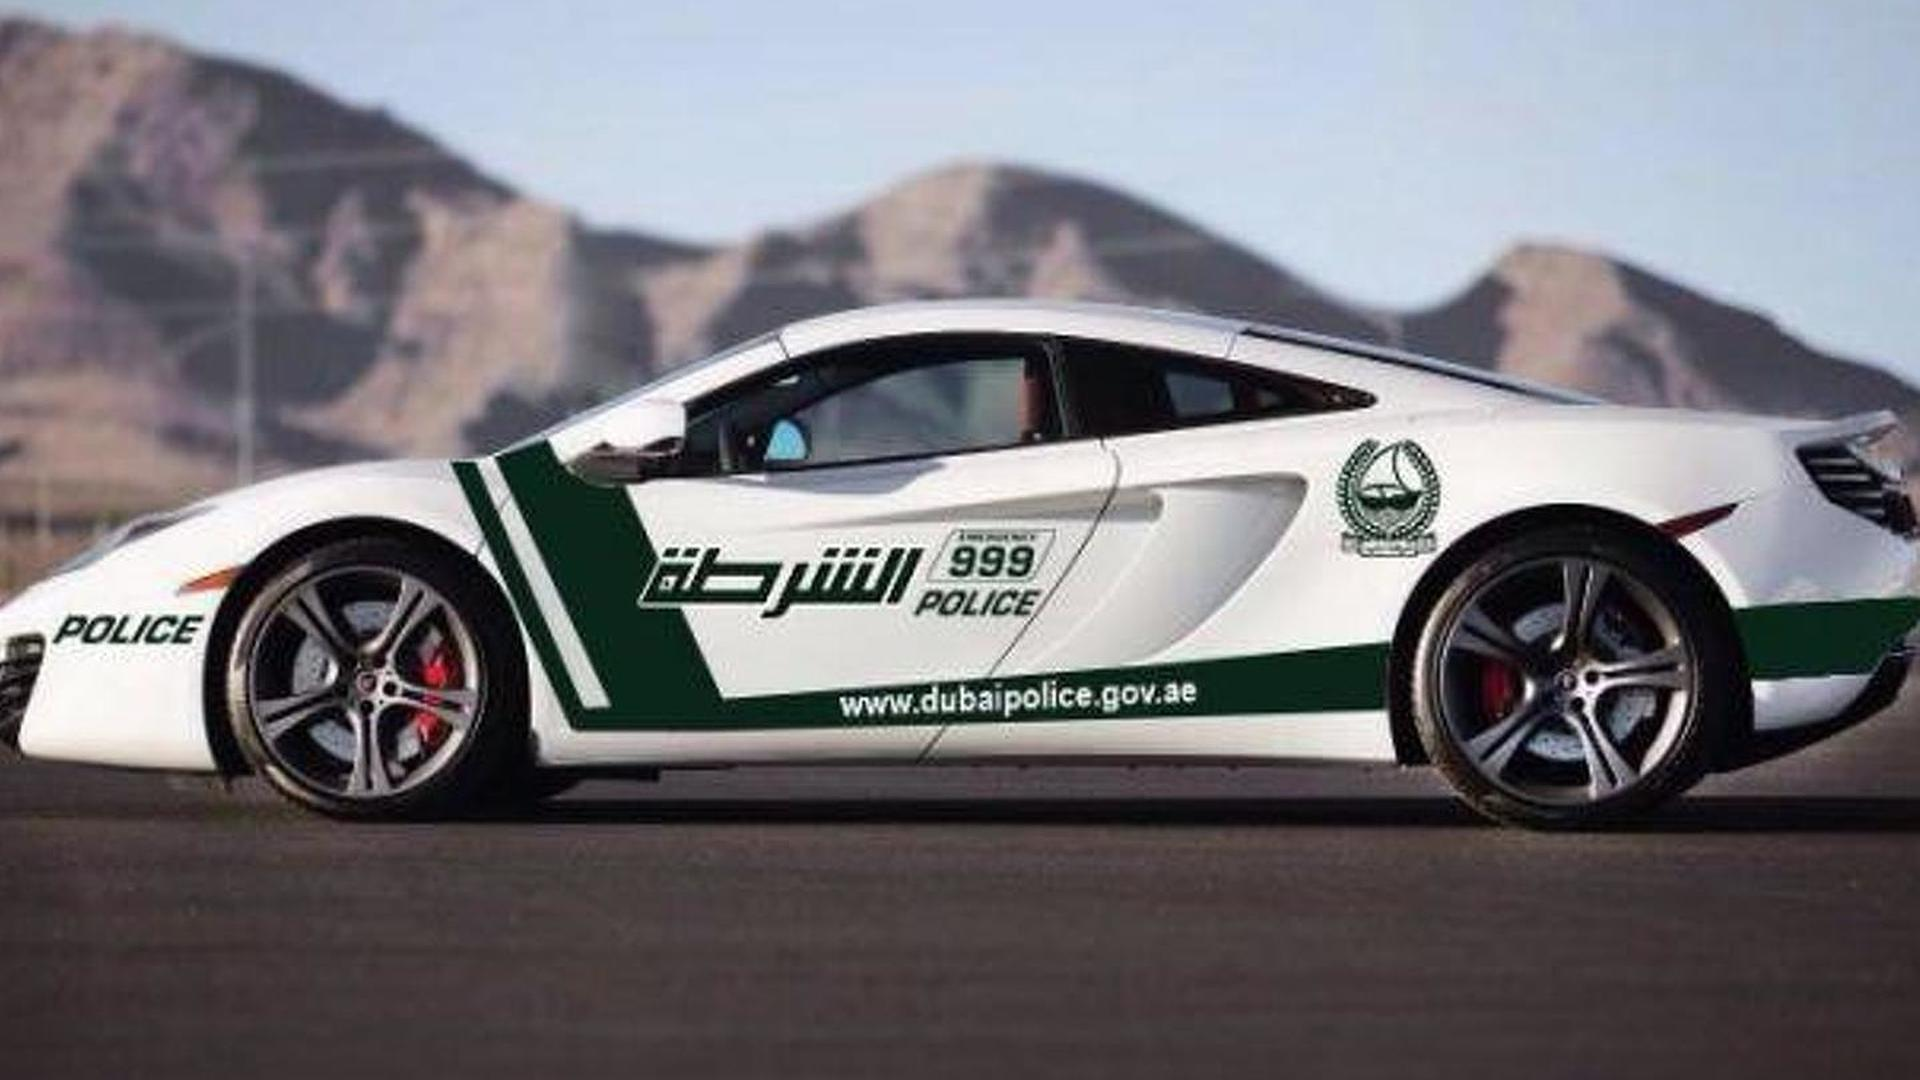 Dubai Police add a McLaren MP4-12C to their lineup